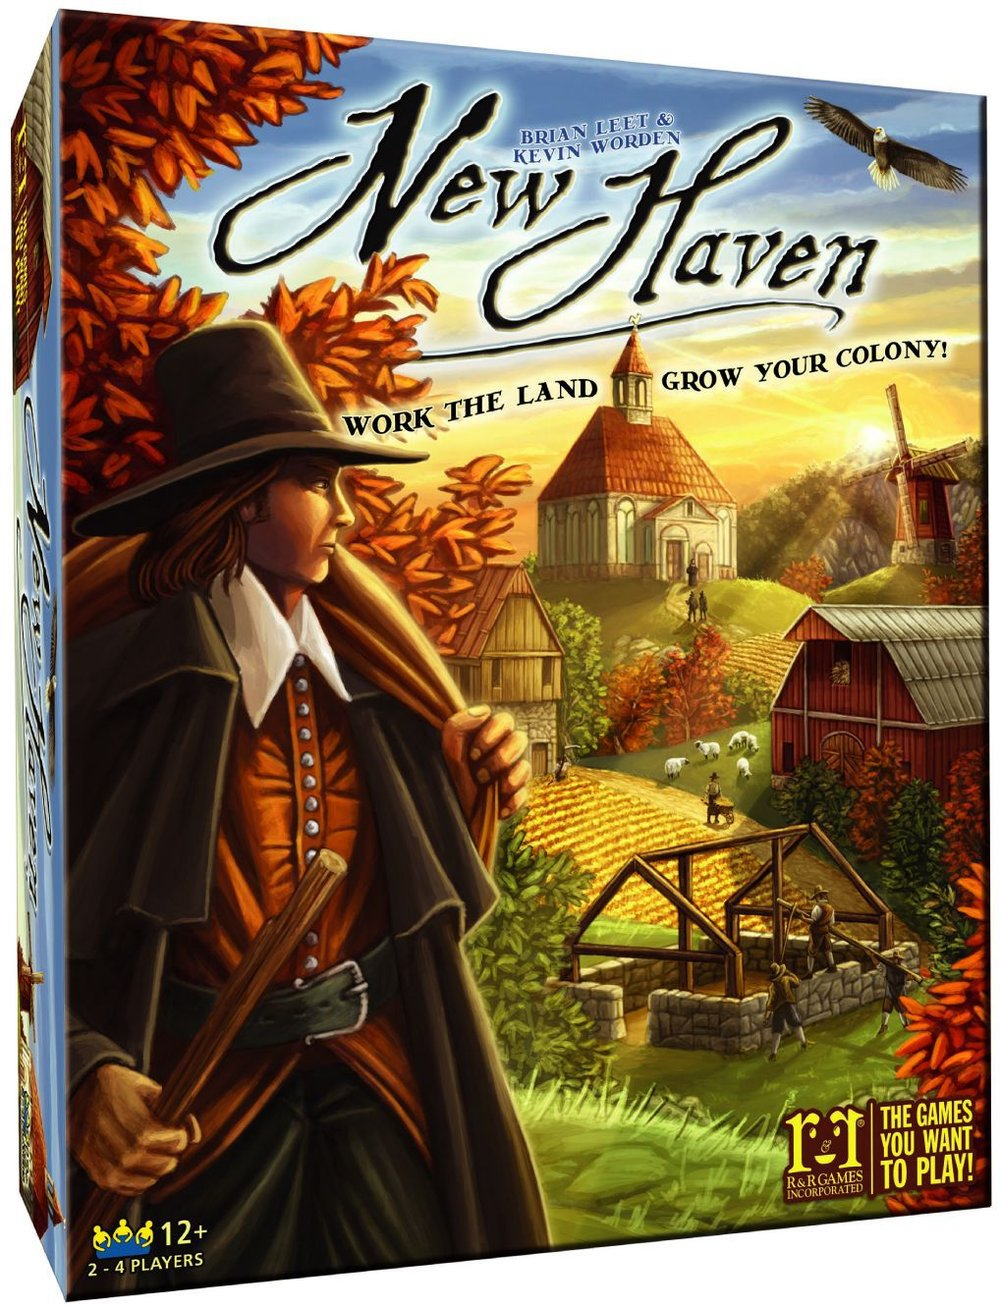 Donate By: Community Member - Set in colonial New England, players must develop the riches of the land and build a thriving settlement.Tile Placement60 minutes, 2 - 4 players, ages 12+